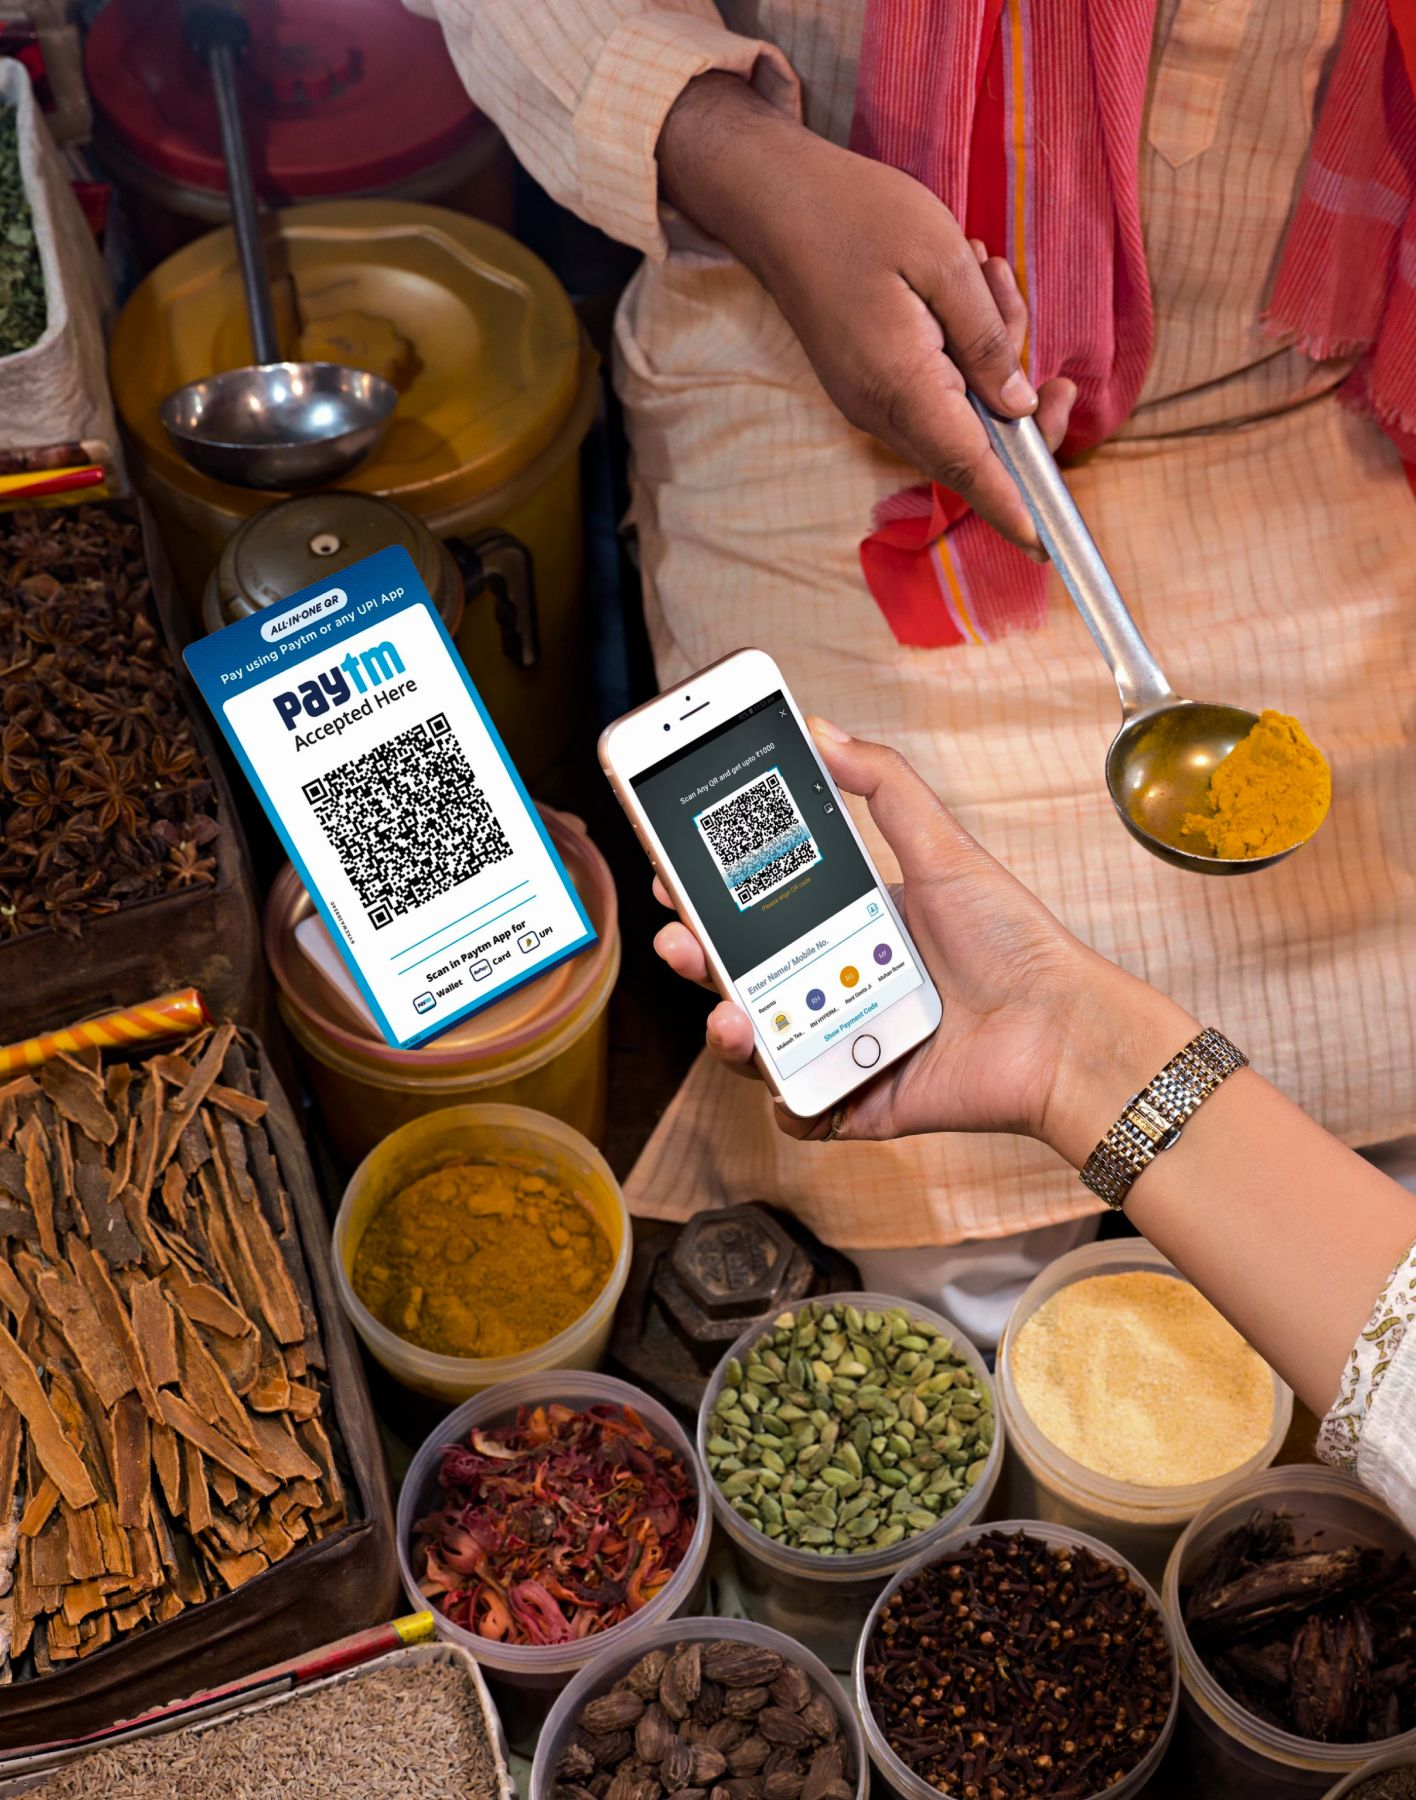 A customer using Paytm to pay for spices in a market